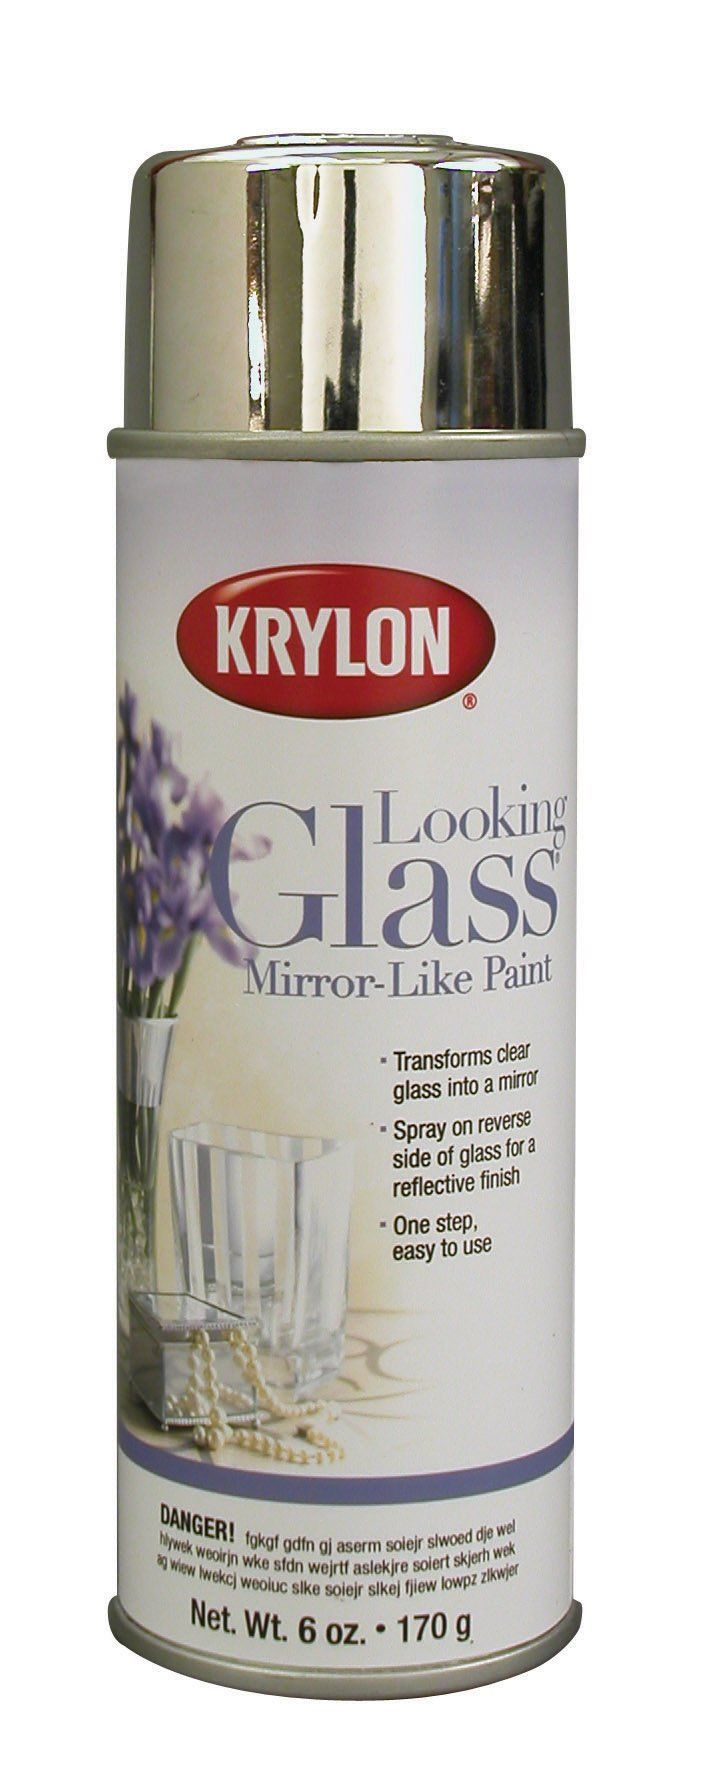 Krylon Looking Glass Mirror Like Aerosol Spray Paint; spray on reverse side of clear glass for a reflective finish